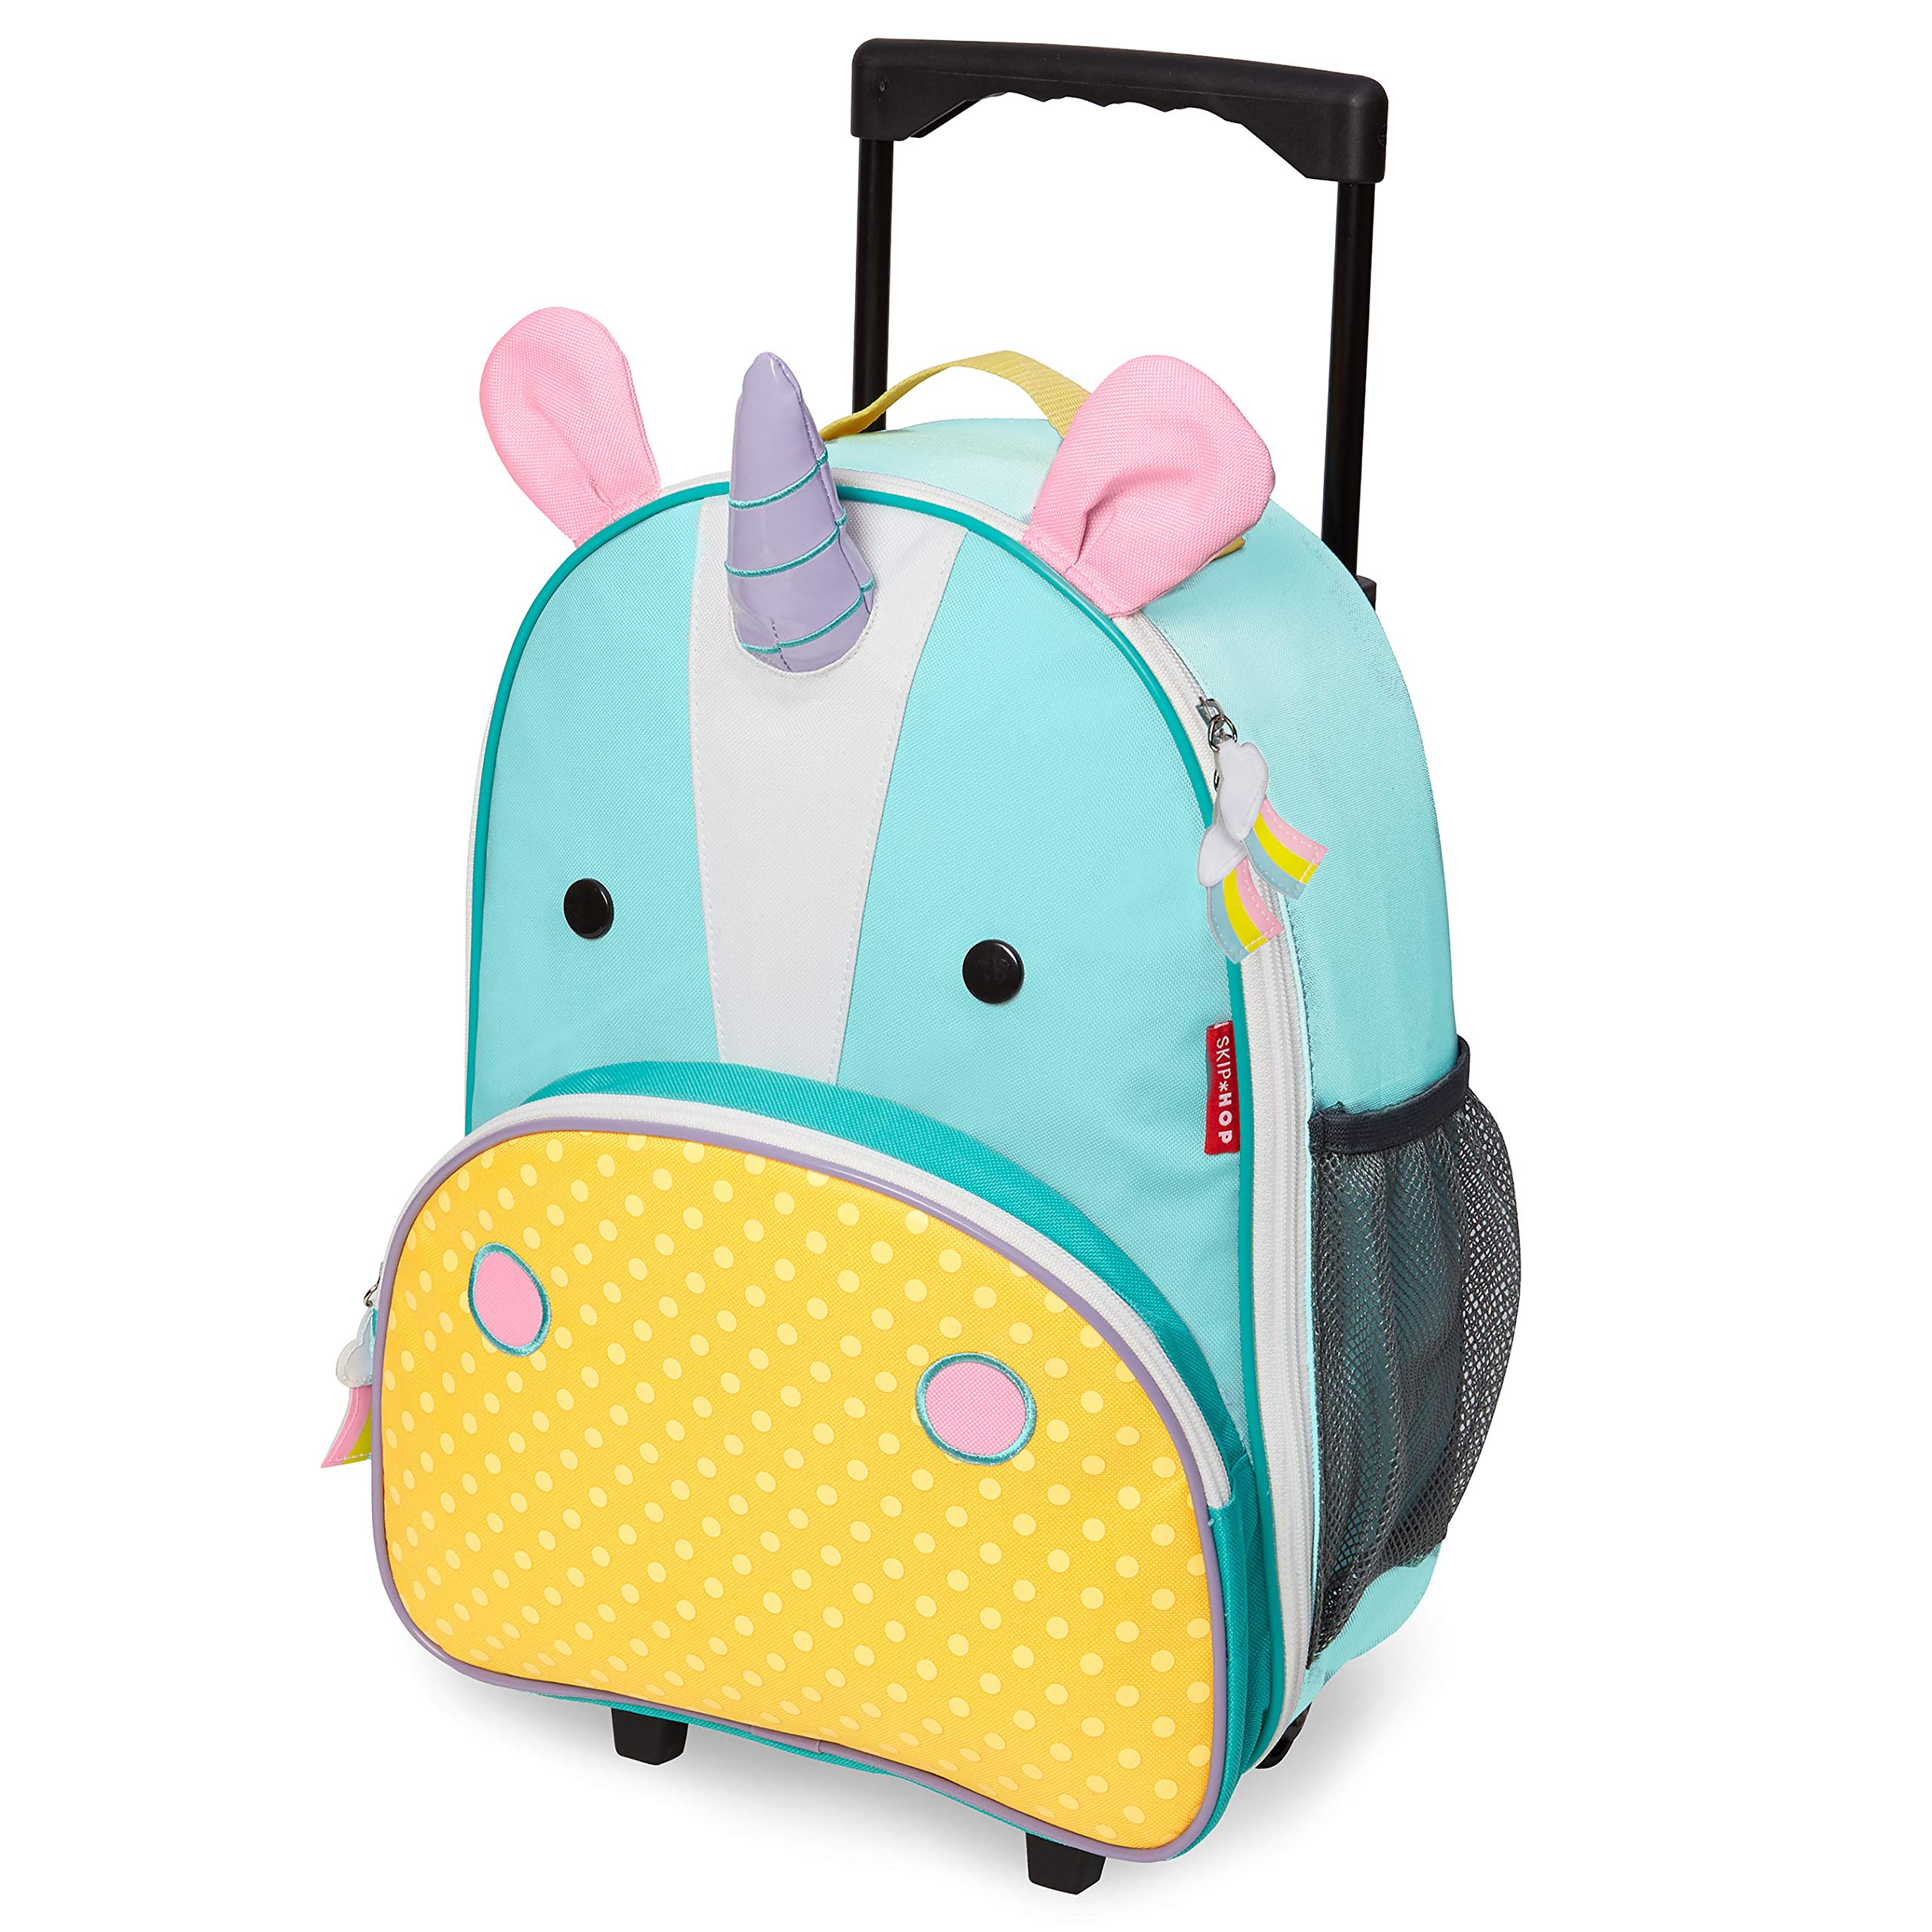 Skip Hop Kids Luggage with Wheels, Unicorn by Skip Hop